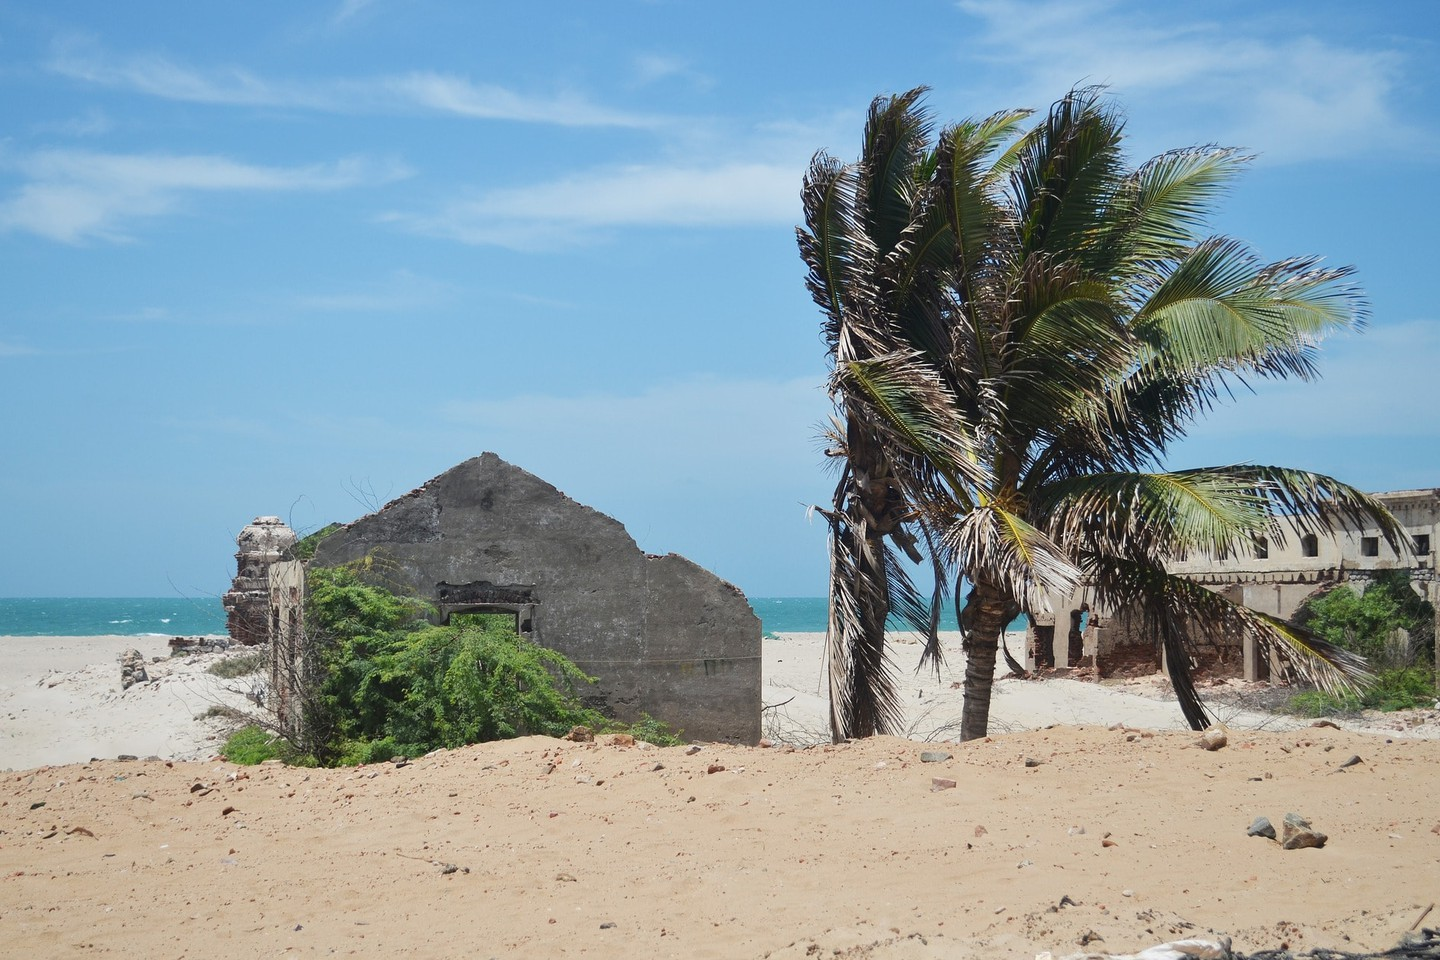 Dhanushkodi is an abandoned ghost town in Tamil Nadu